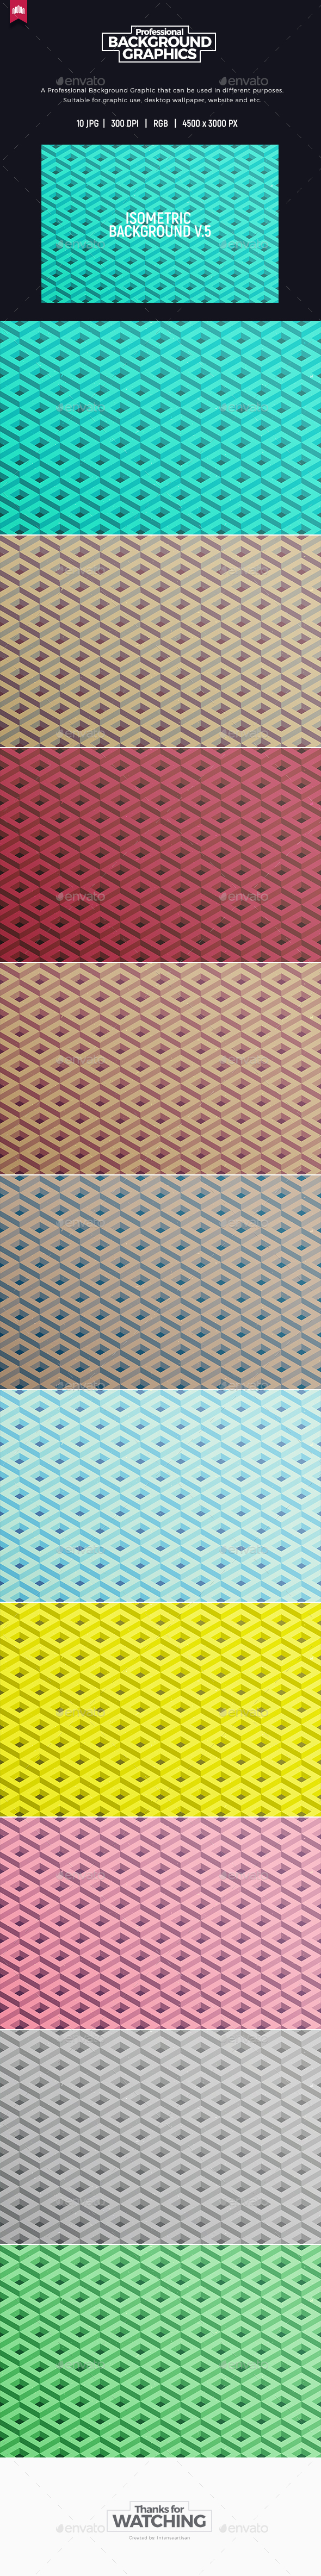 Isometric Background V.5 - Abstract Backgrounds